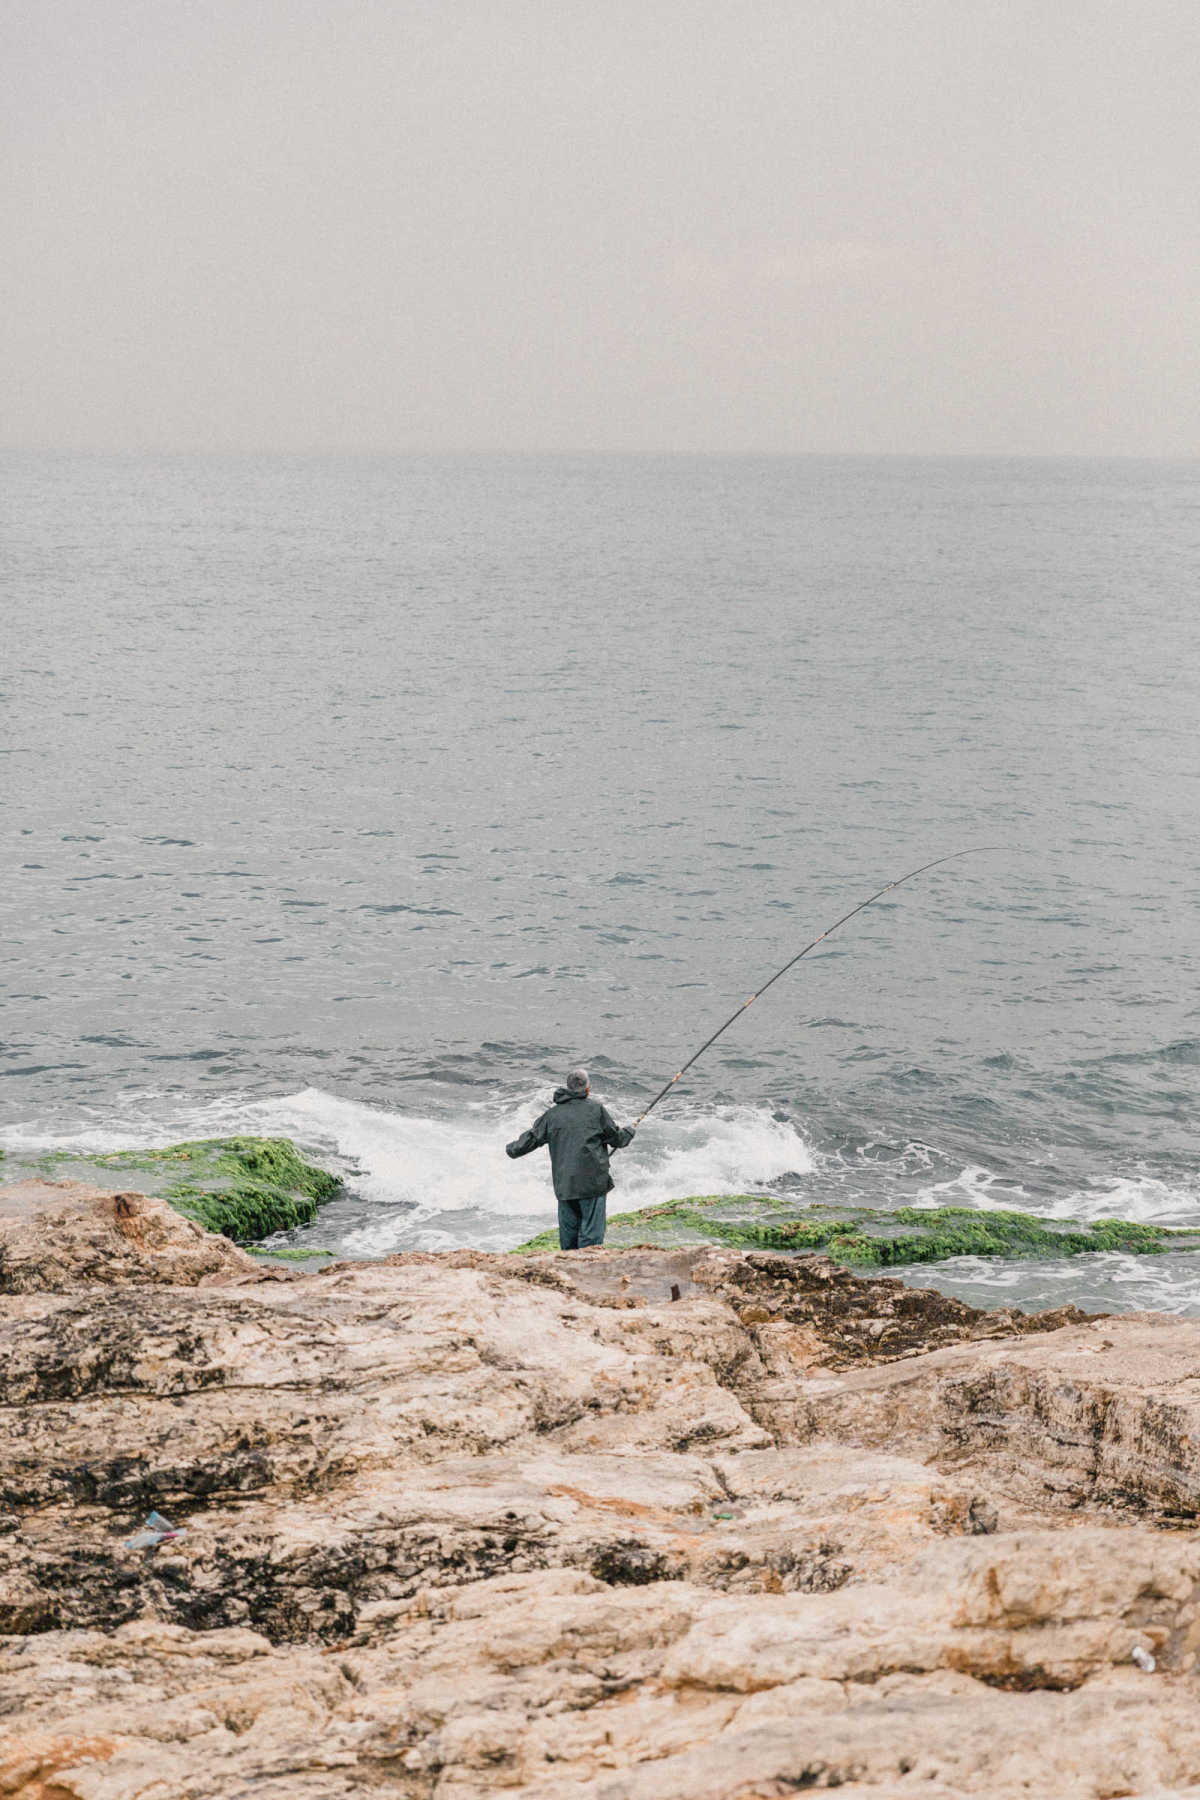 A man in full-body rain gear fishing. He stands on the rocks by the water as the waves come in.